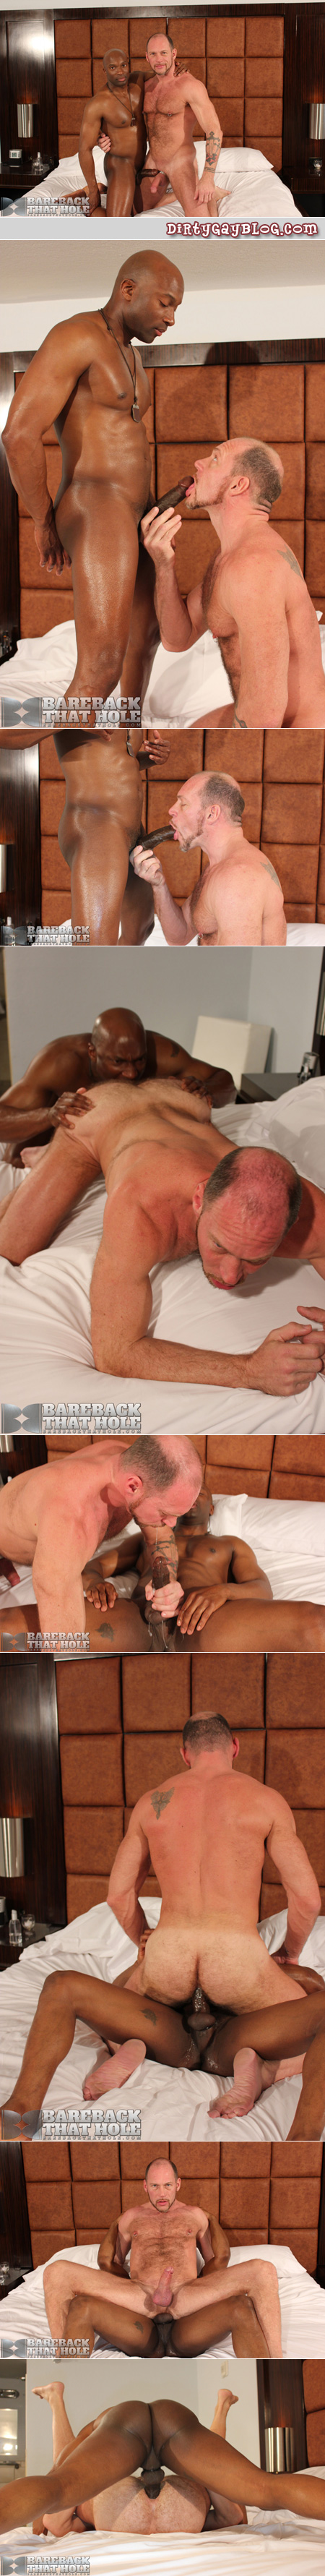 Black stud fucks an extremely hairy older man in his ass raw after rimming him.